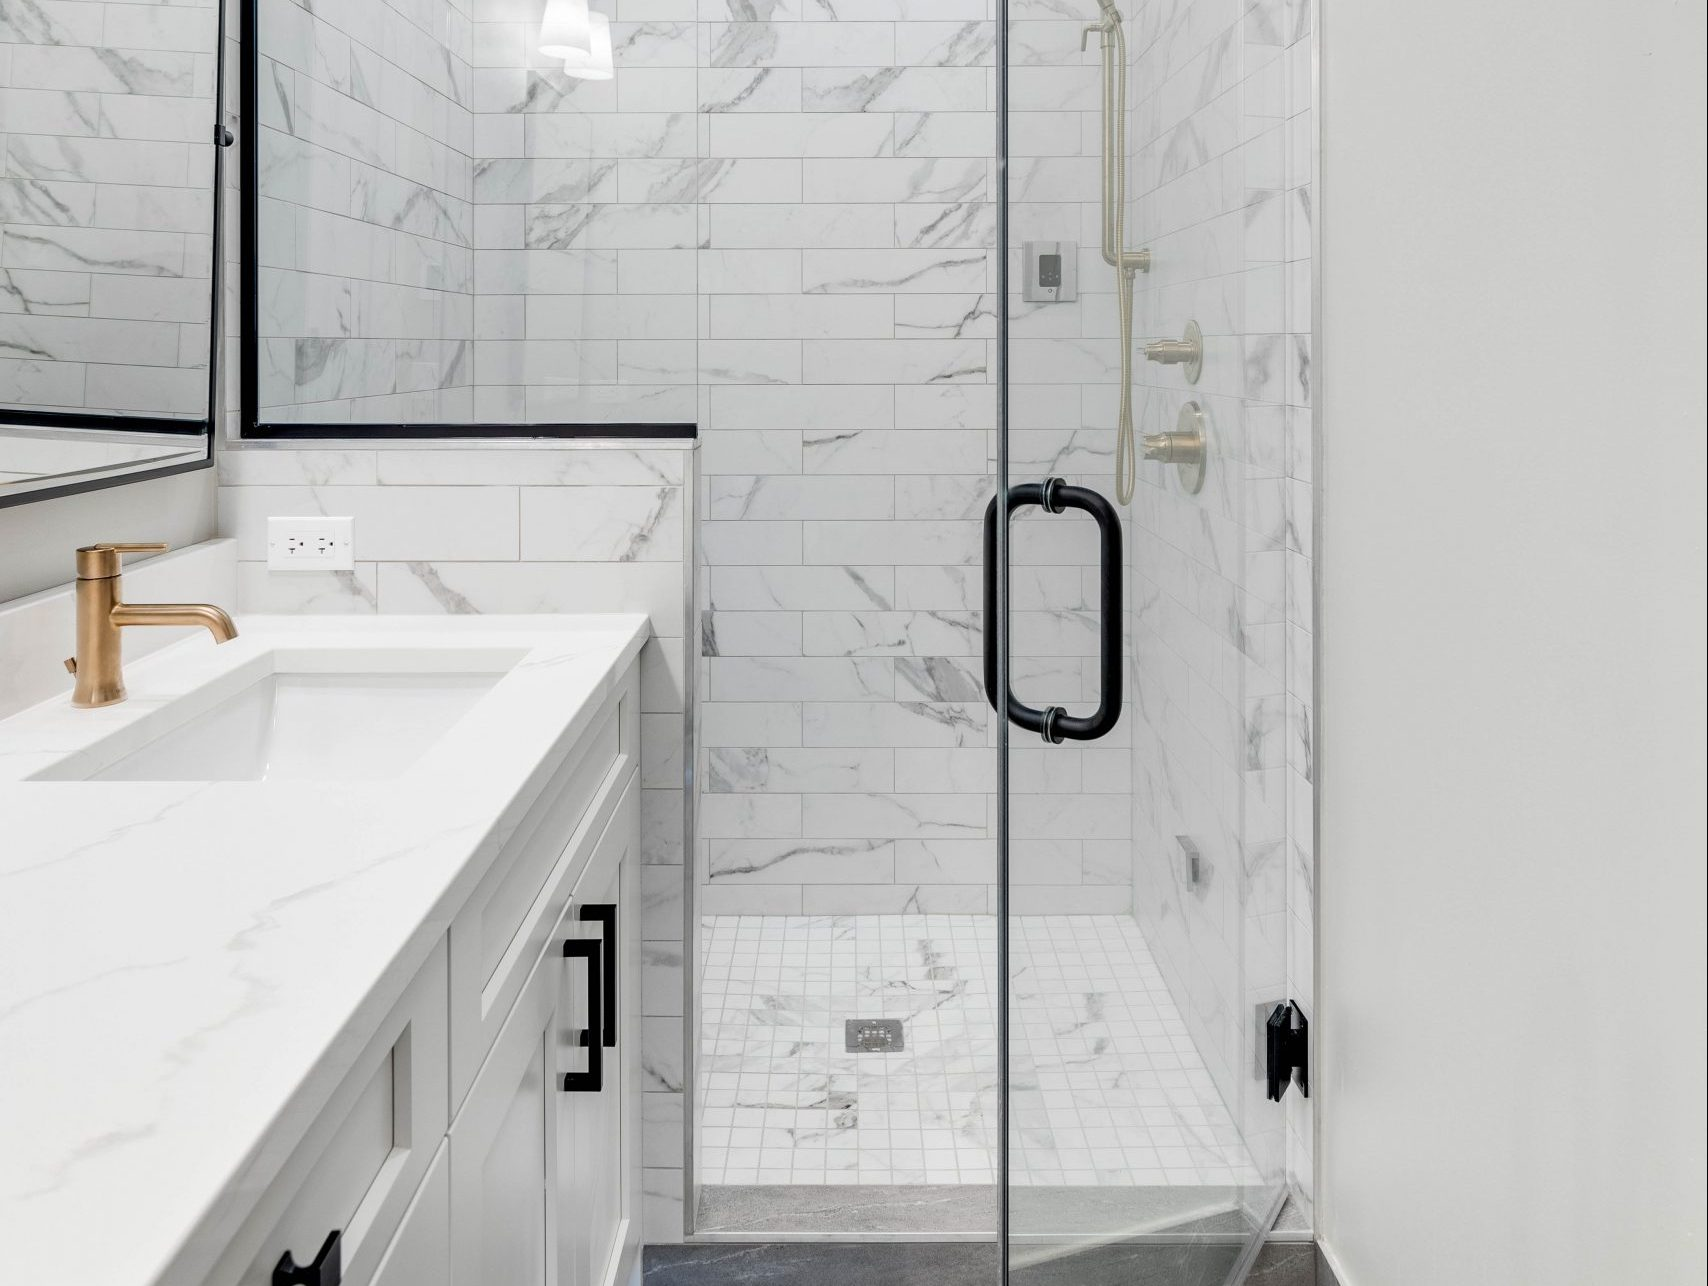 2021 Bathroom Design Trends The Mint Hill Times